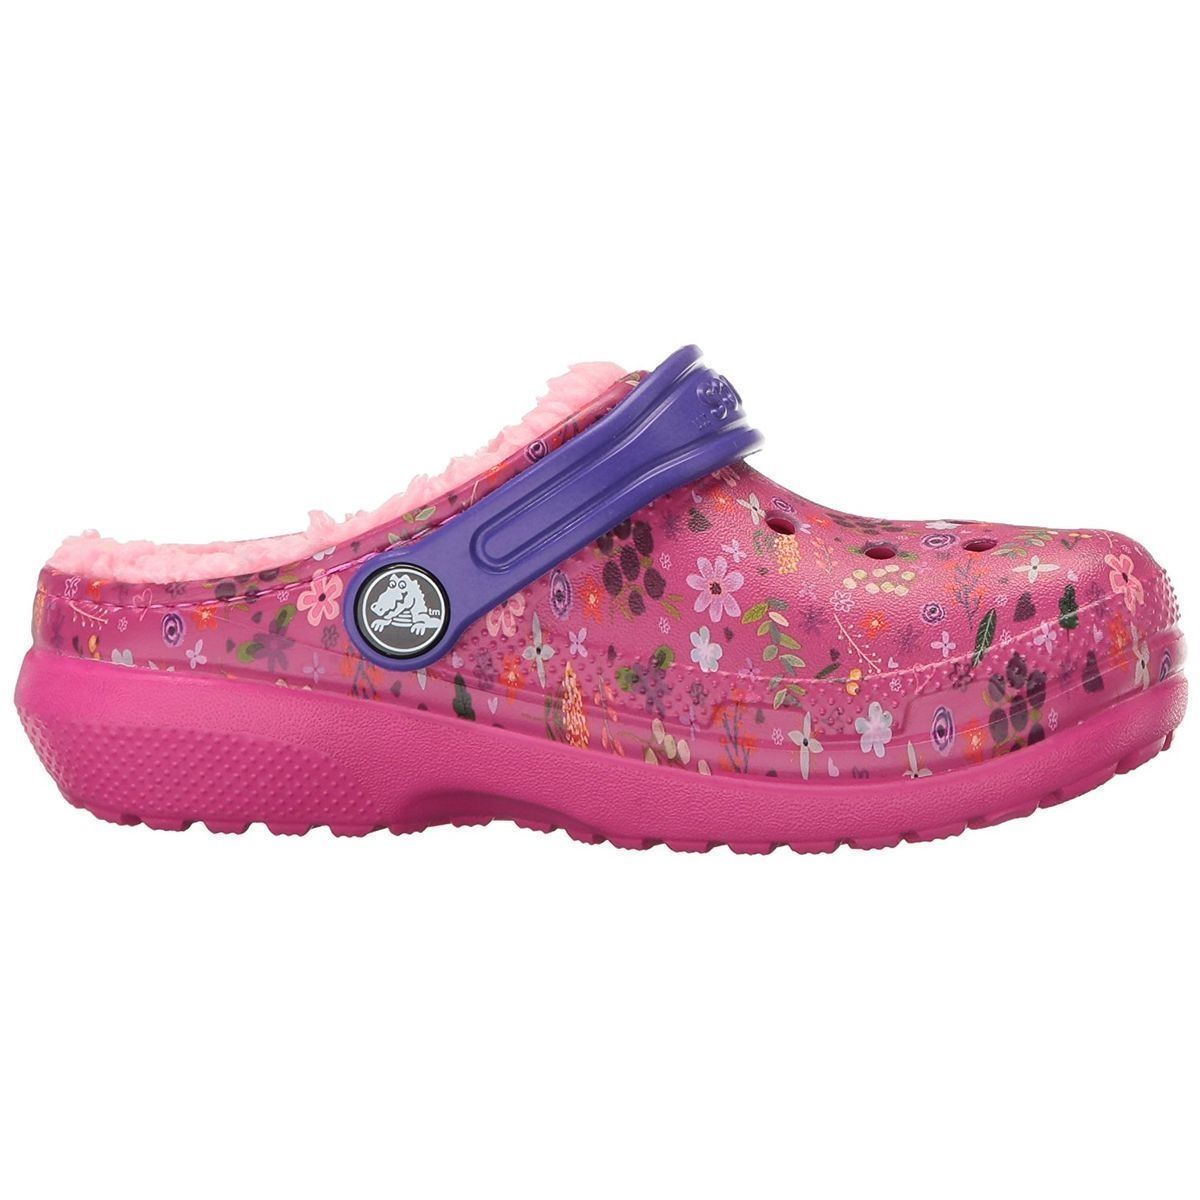 BARBADOS KID'S CLASSIC FUZZ LINED GRAPHIC CLOG:ROSE/CAOUTCHOUC/CAOUTCHOUC/CAOUTCHOUC/Rose